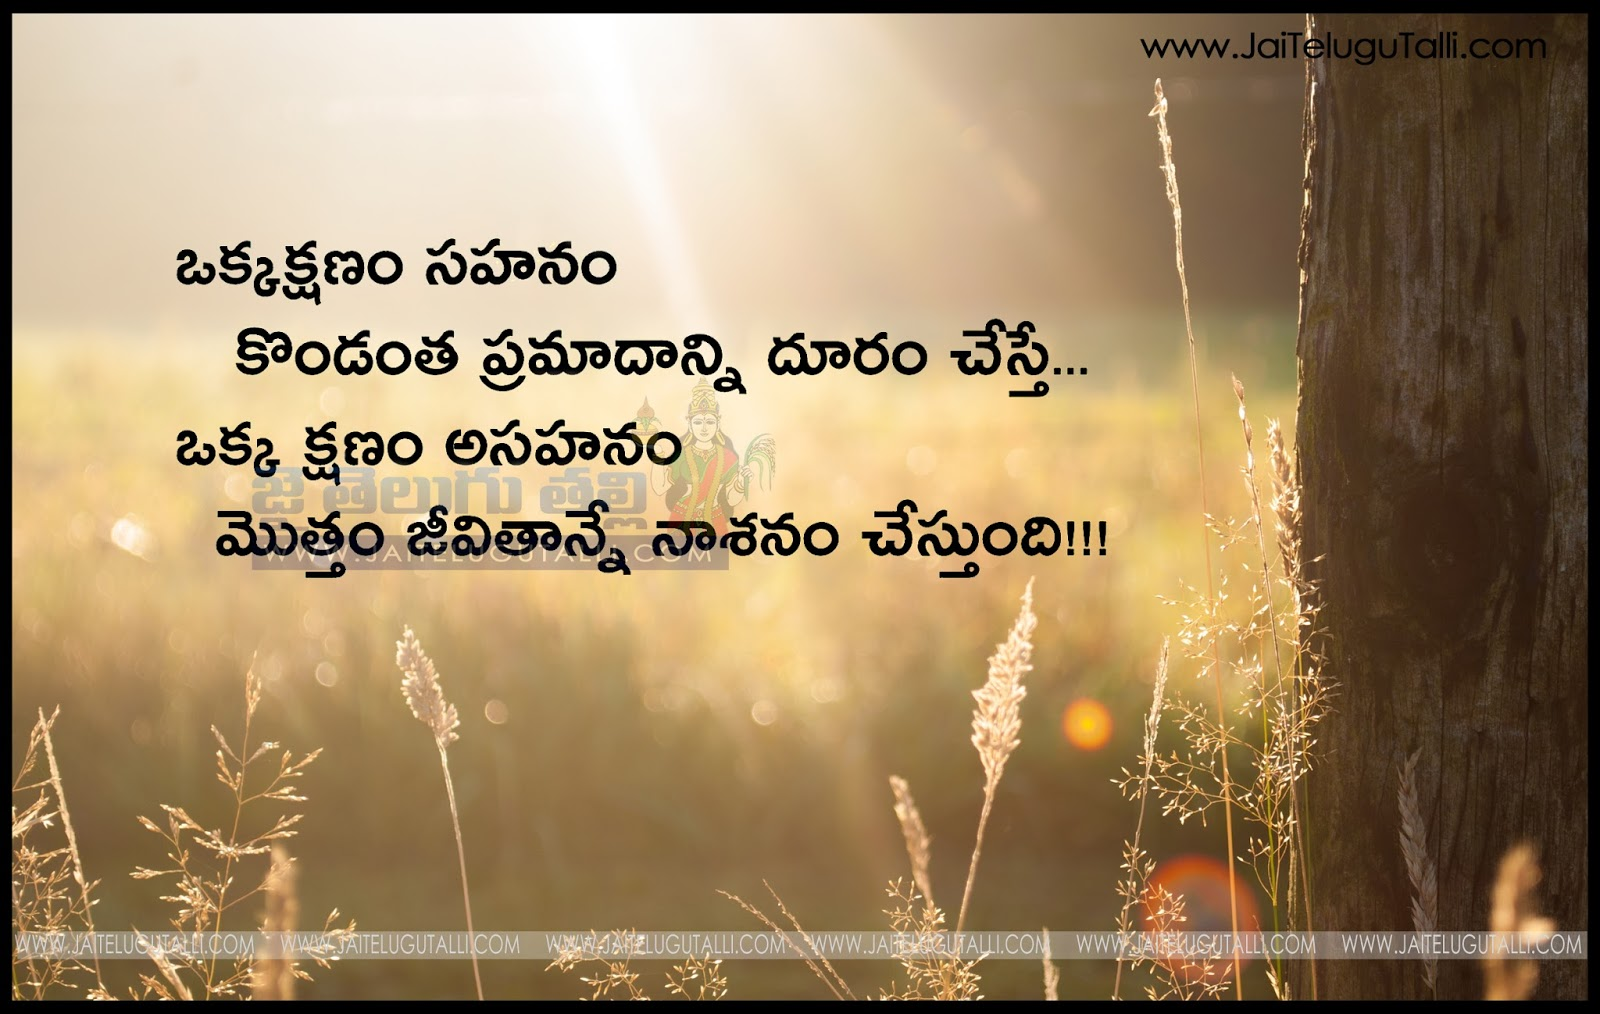 Life Inspirational Quotes Best Telugu Life Quotes Hd Wallpapers Nice Inspirational Telugu